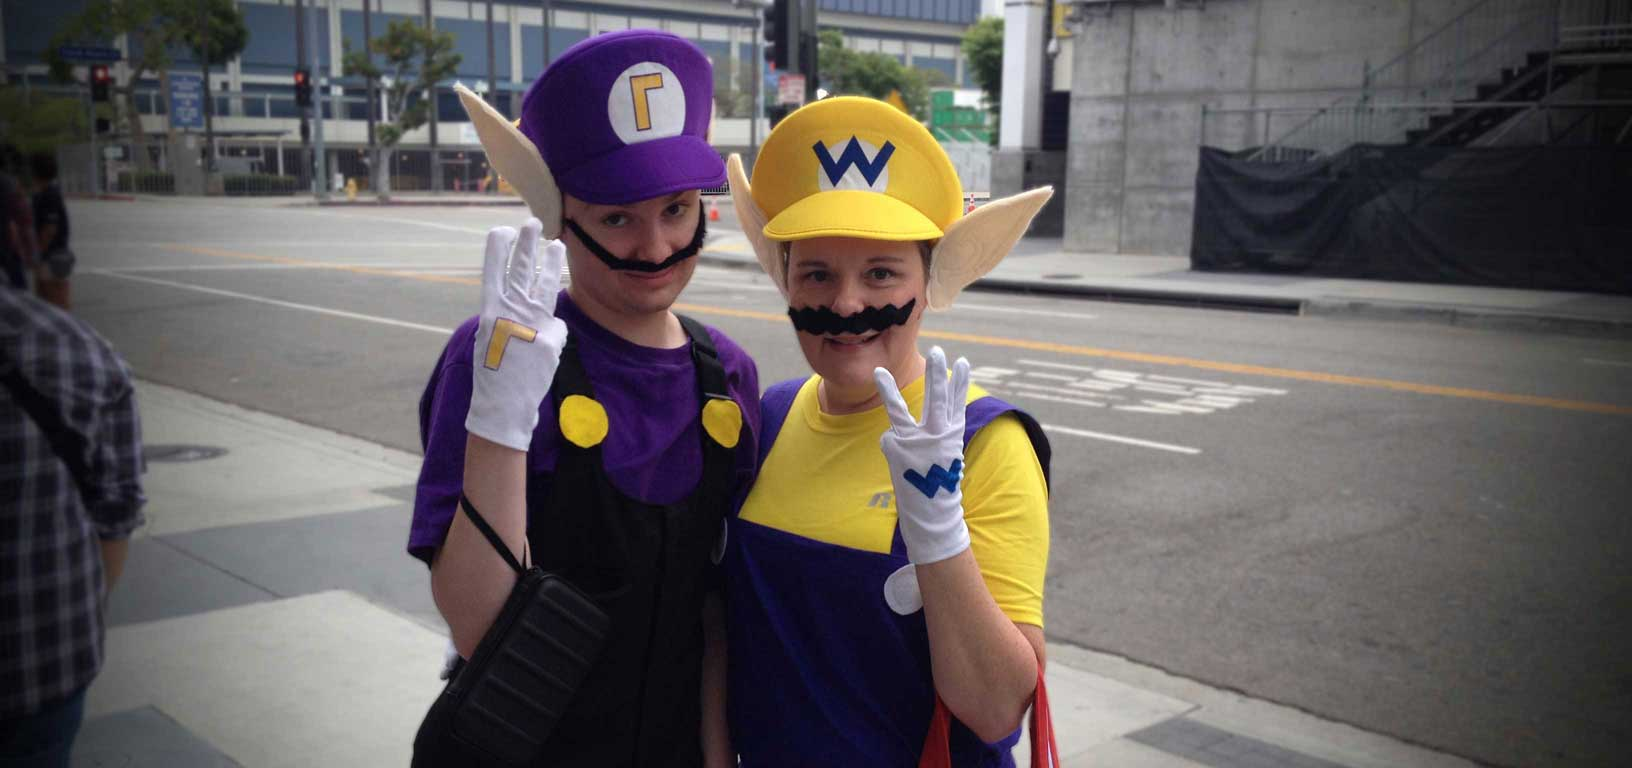 Kris Doyle and her son Will dressed up as Wario and Waluigi